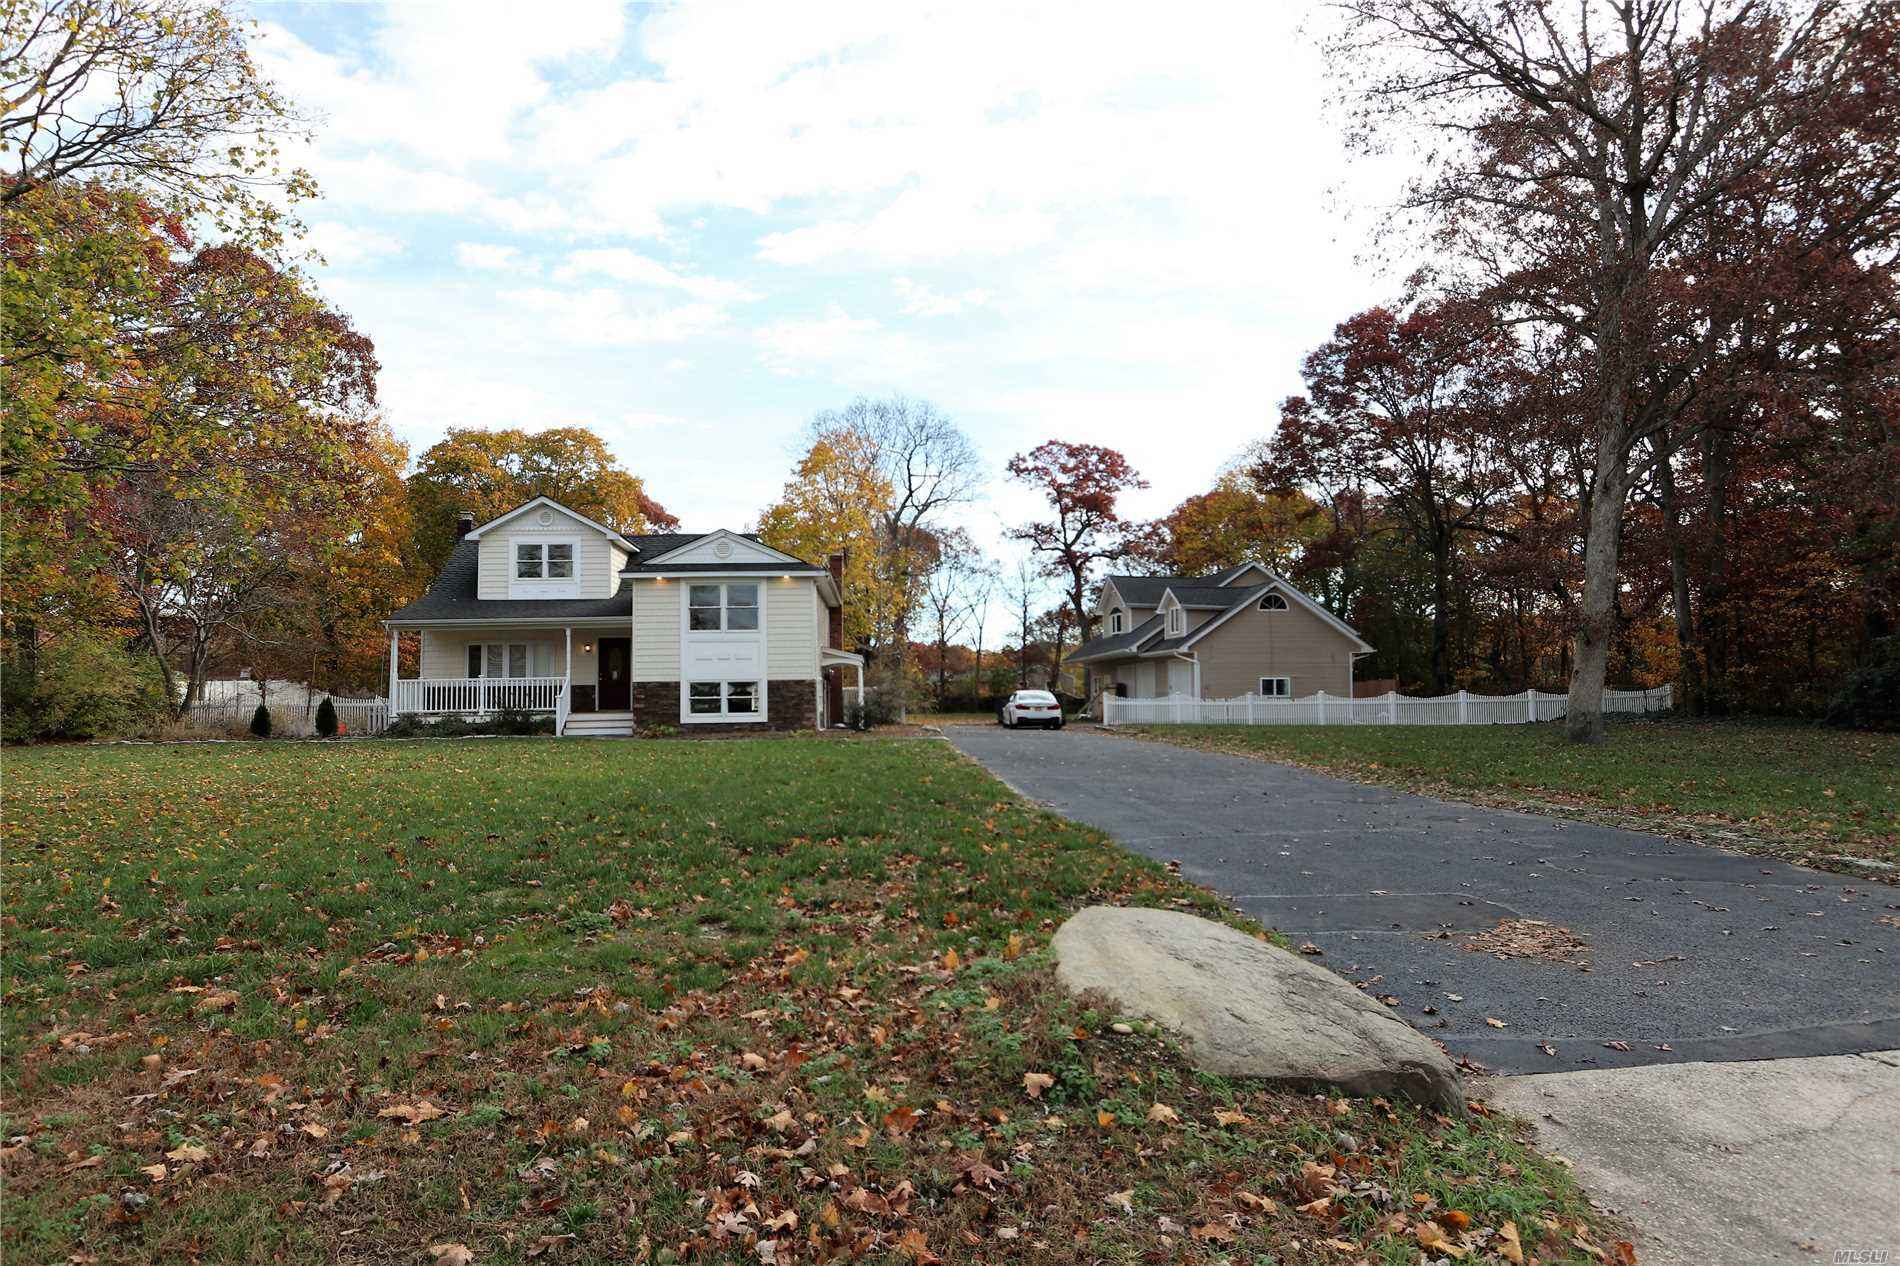 Large 5 Br., 3.5 Bath Updated Split Level Home With Det. 4 Car Garage On 1.25 Flat Acres In Desirable North Coram On A Great Quiet Street. Features Oak Floors, New Baths And Kitchen (Whole House Was Renovated 3 Yrs Ago) Huge 2 Story Detached Legal 1500 Sq. Ft. 4 Car Garage W/ Loft. All C Of O's Are In Place. This Home Has Endless Possibilities